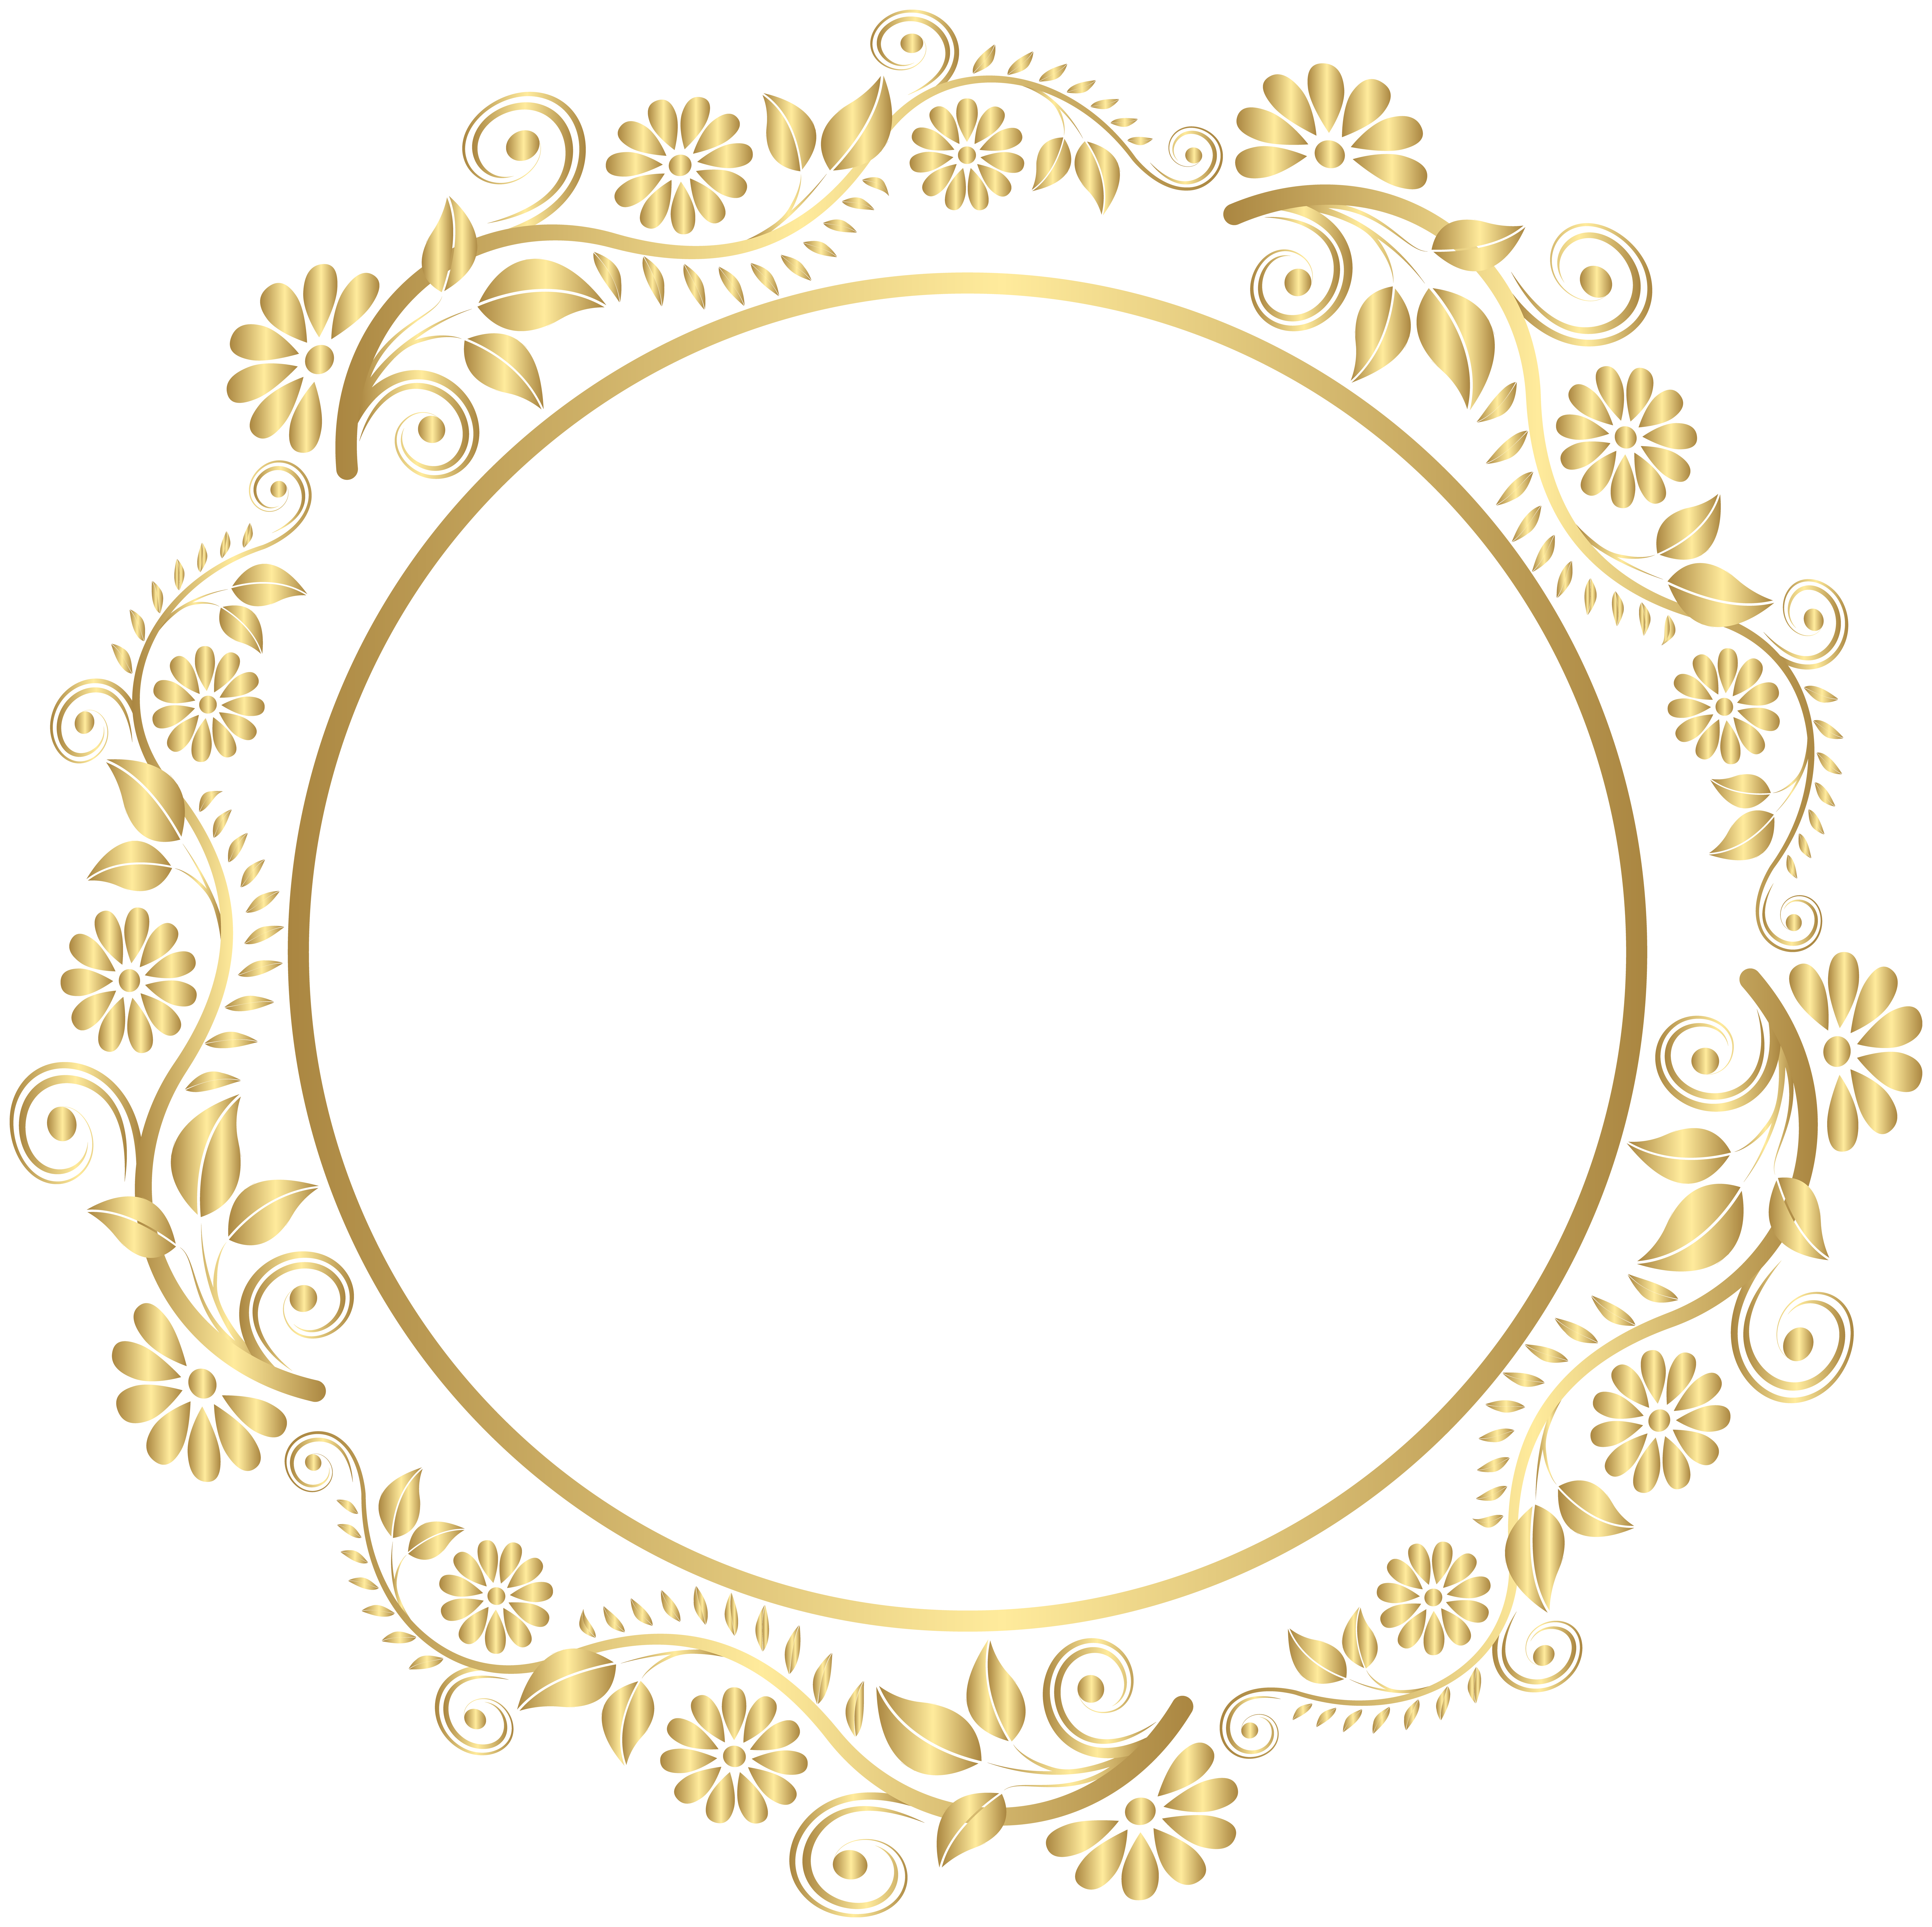 Waves clipart round. Gold border frame deco